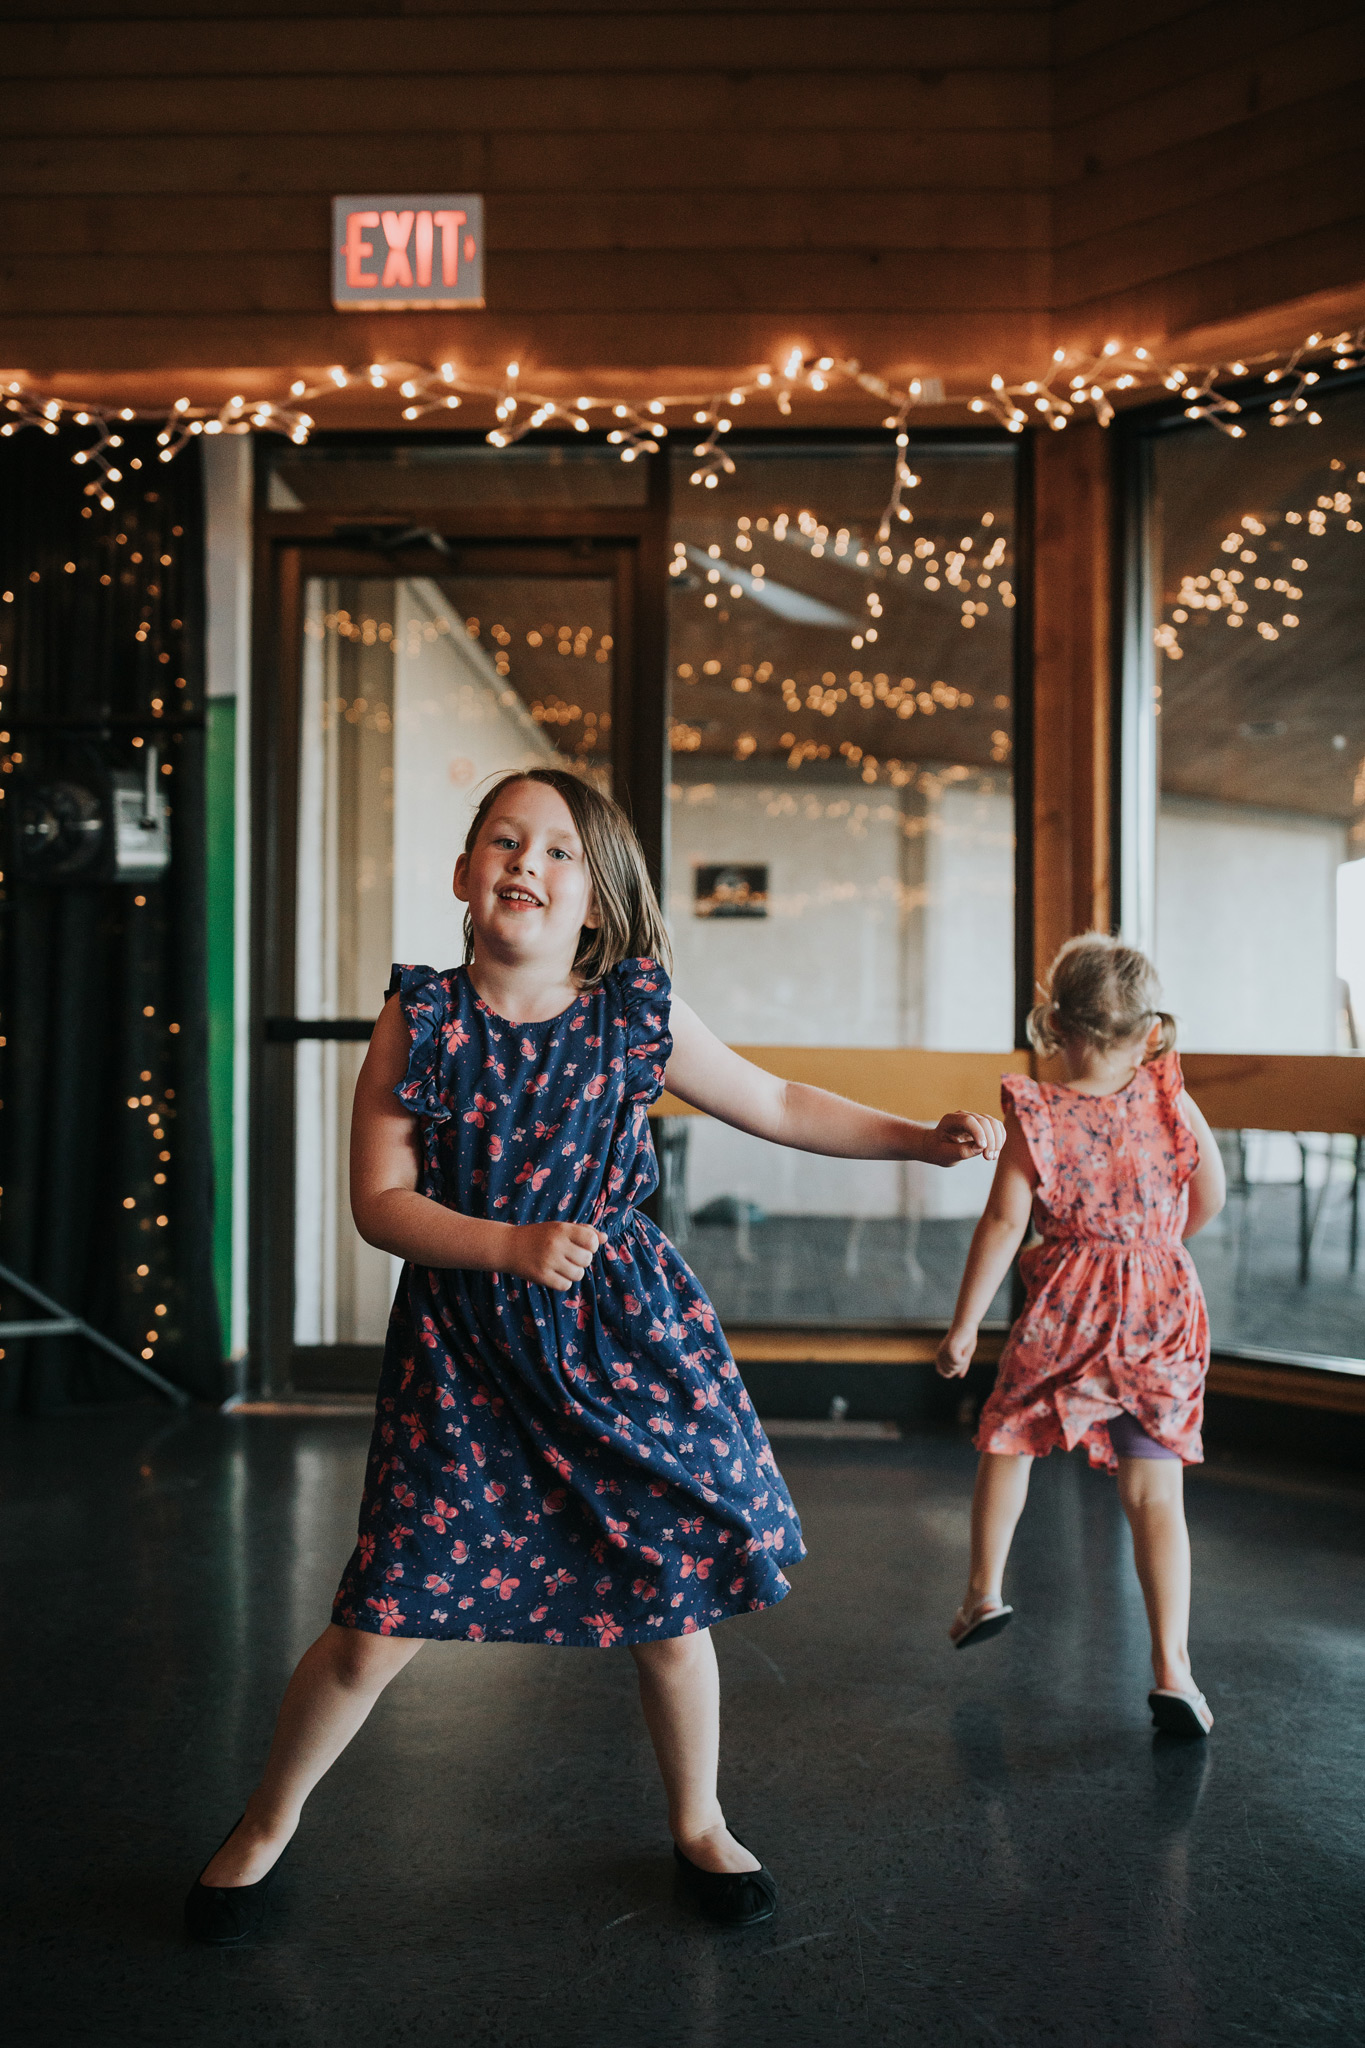 two young girls dancing at the wedding reception